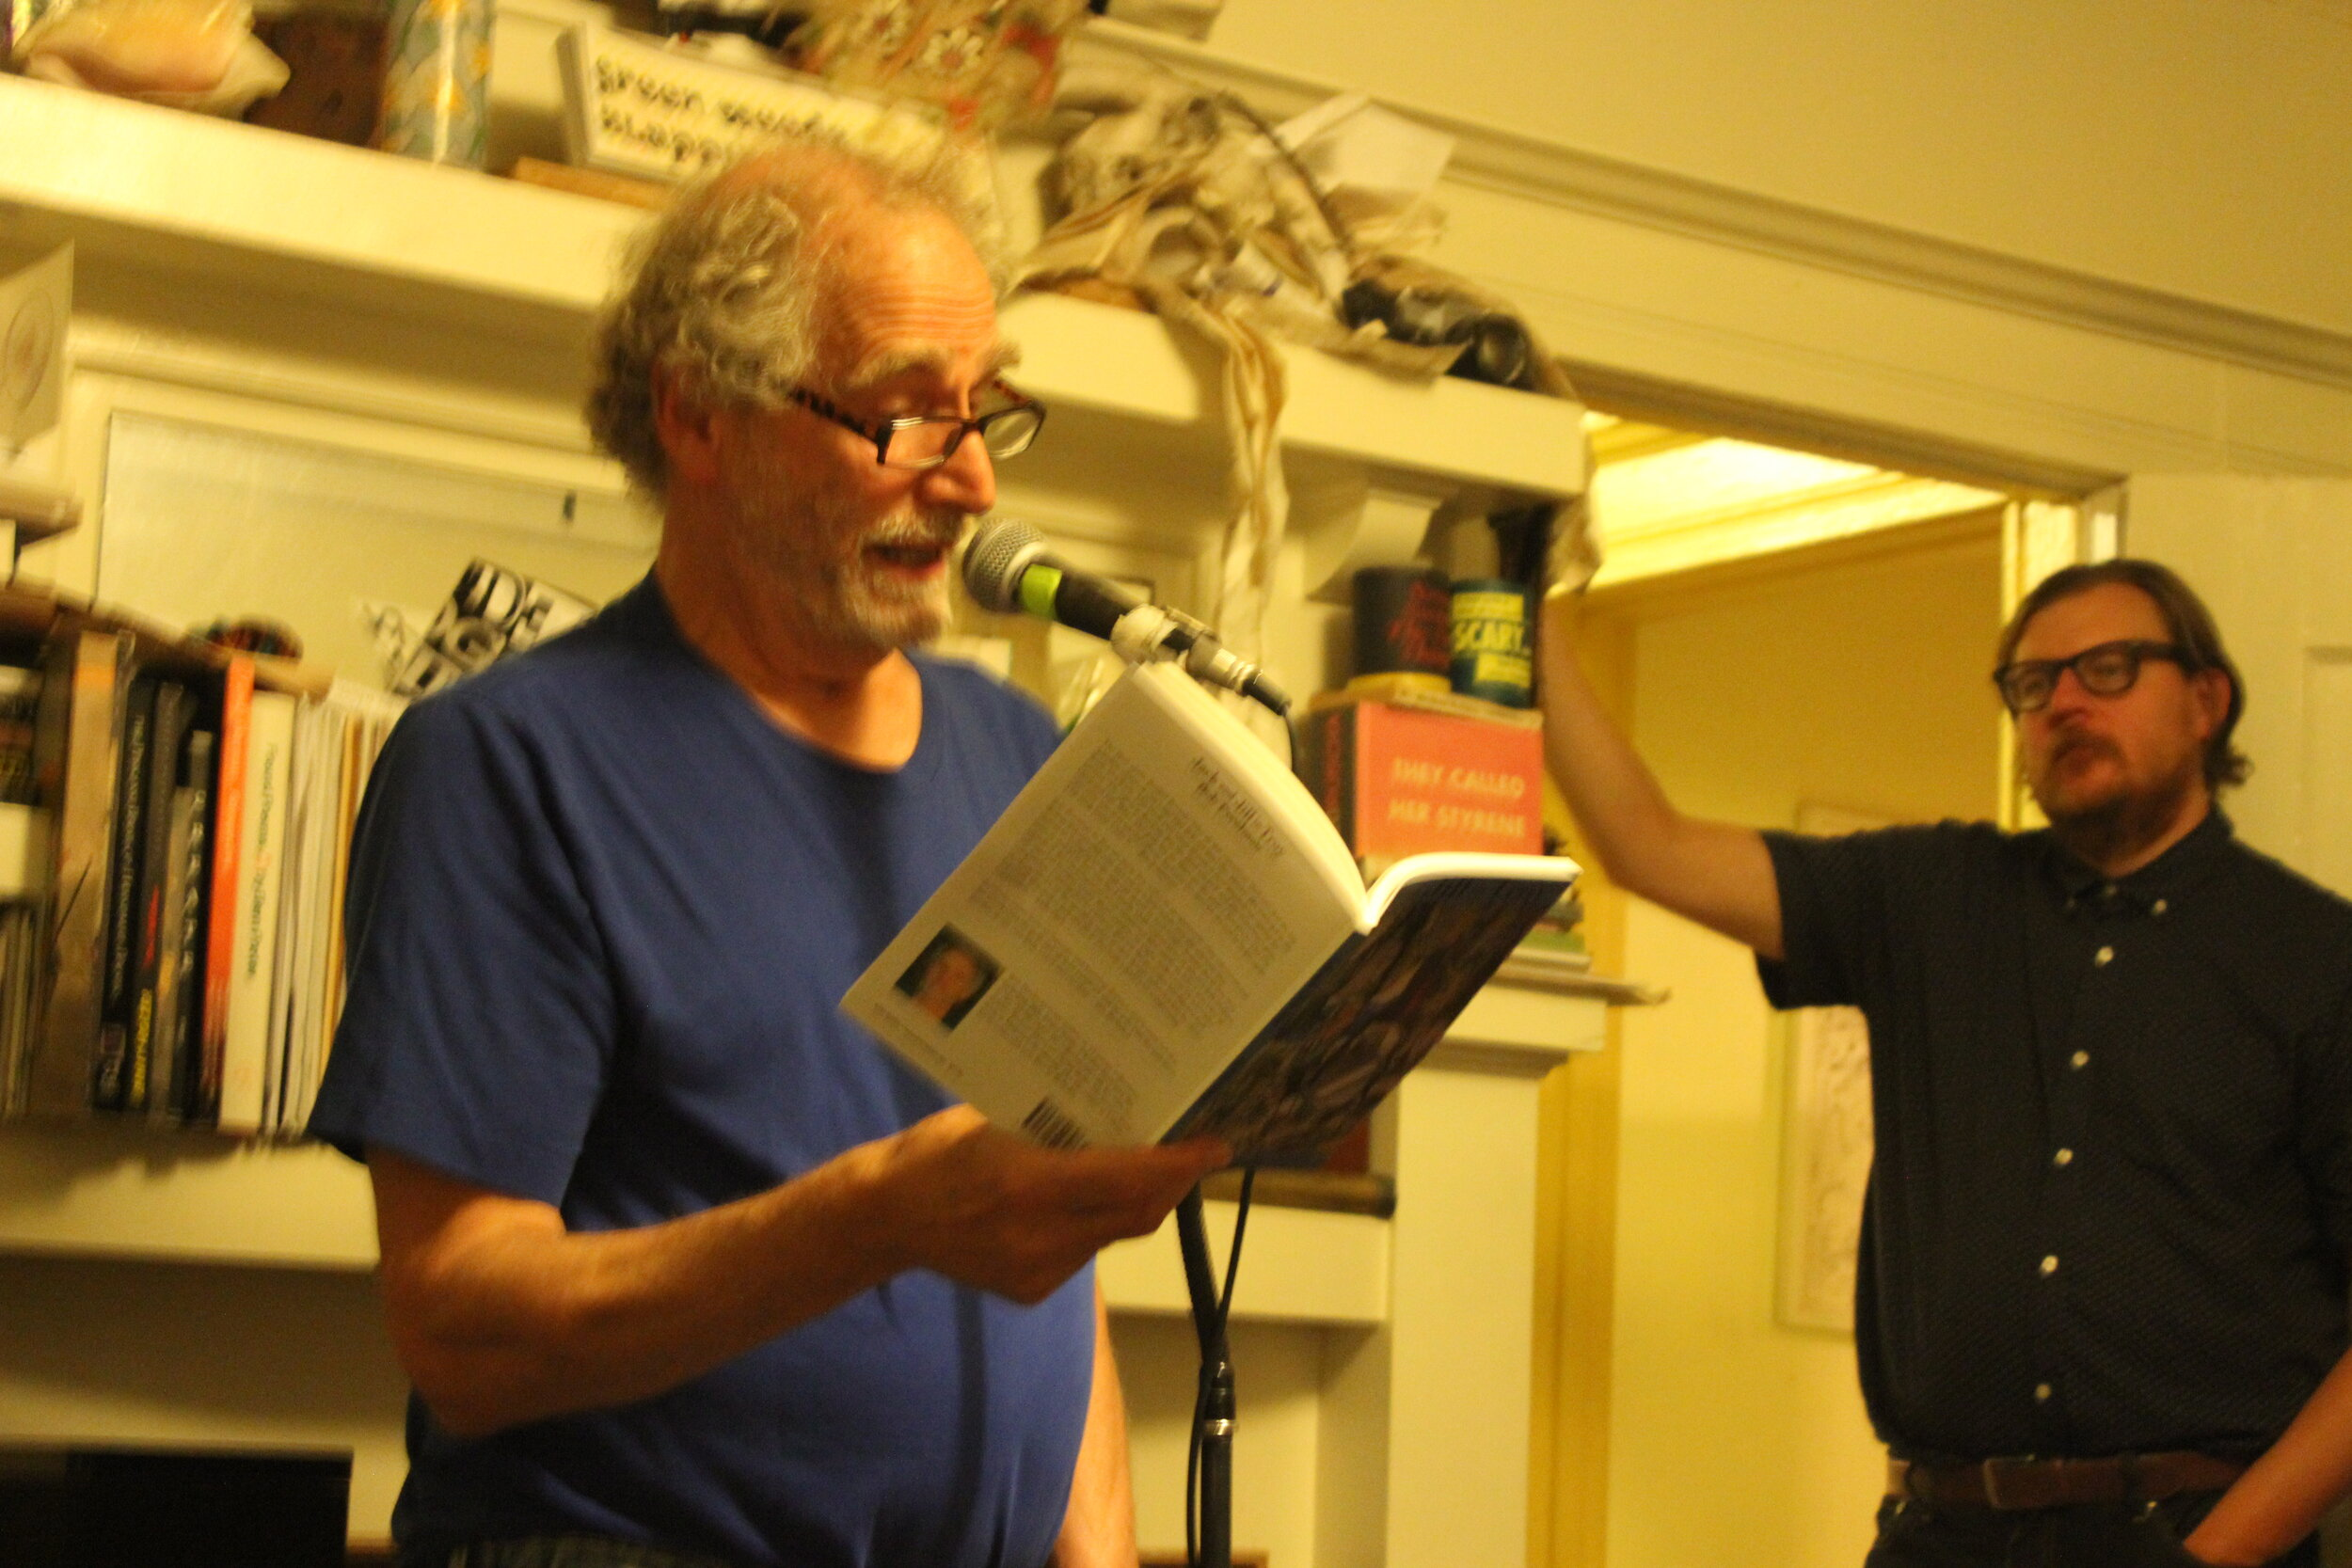 Bob Perelman (left) Reads poetry at The Sponge Series on September 21 2019. Brandon Brown (right) Listens in Quiet Amazement.